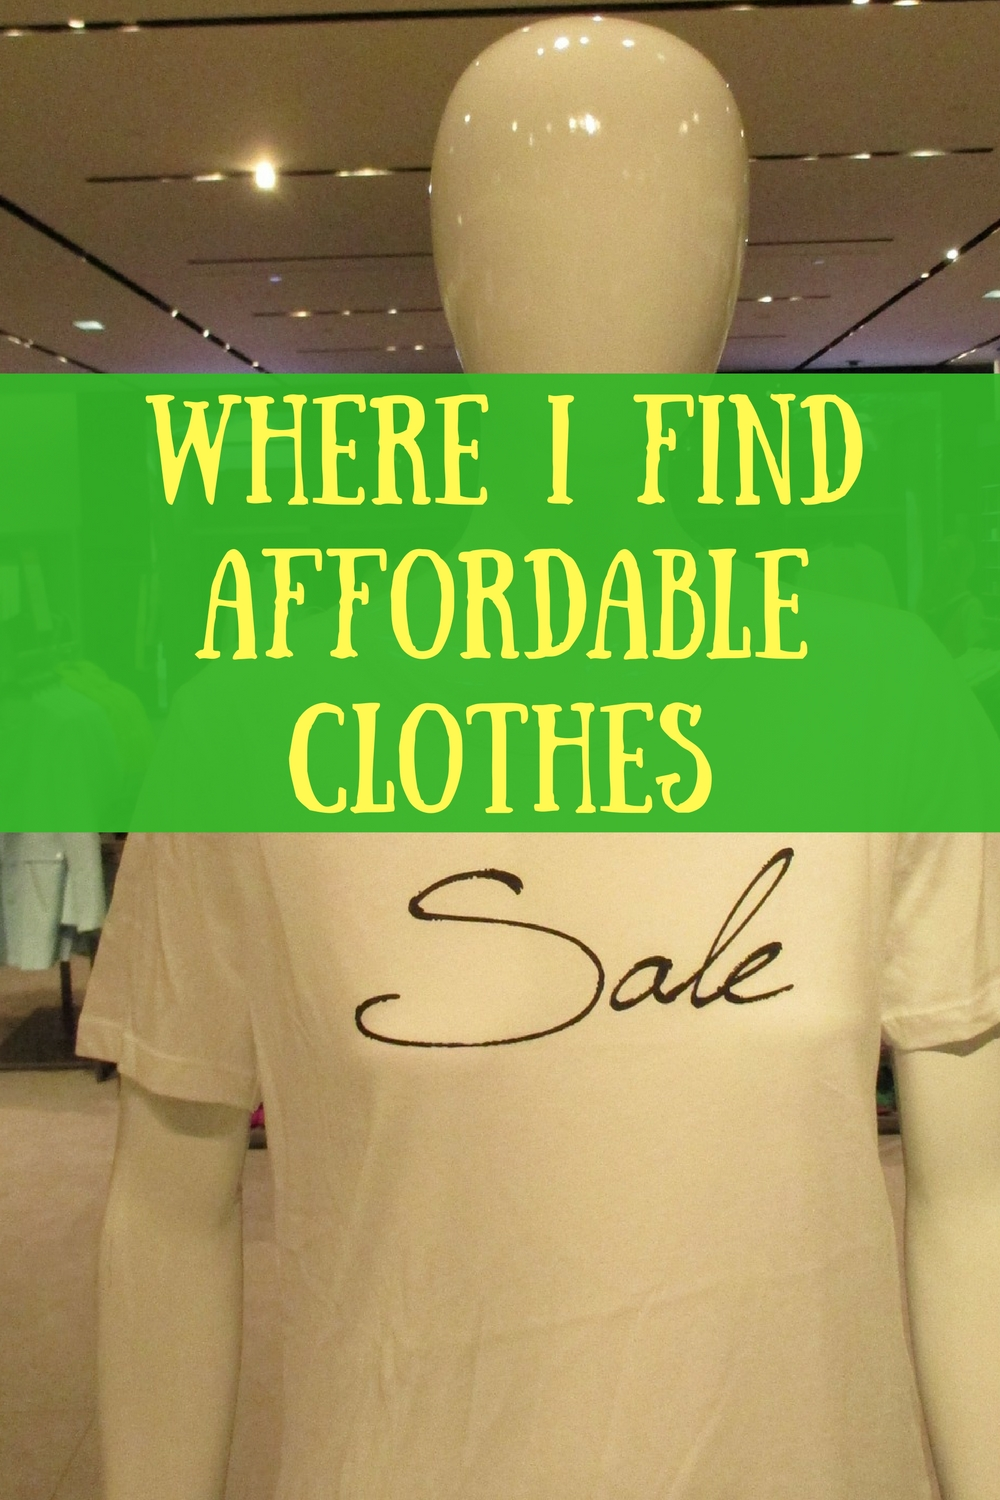 Great ideas on where to find clothes frugally!